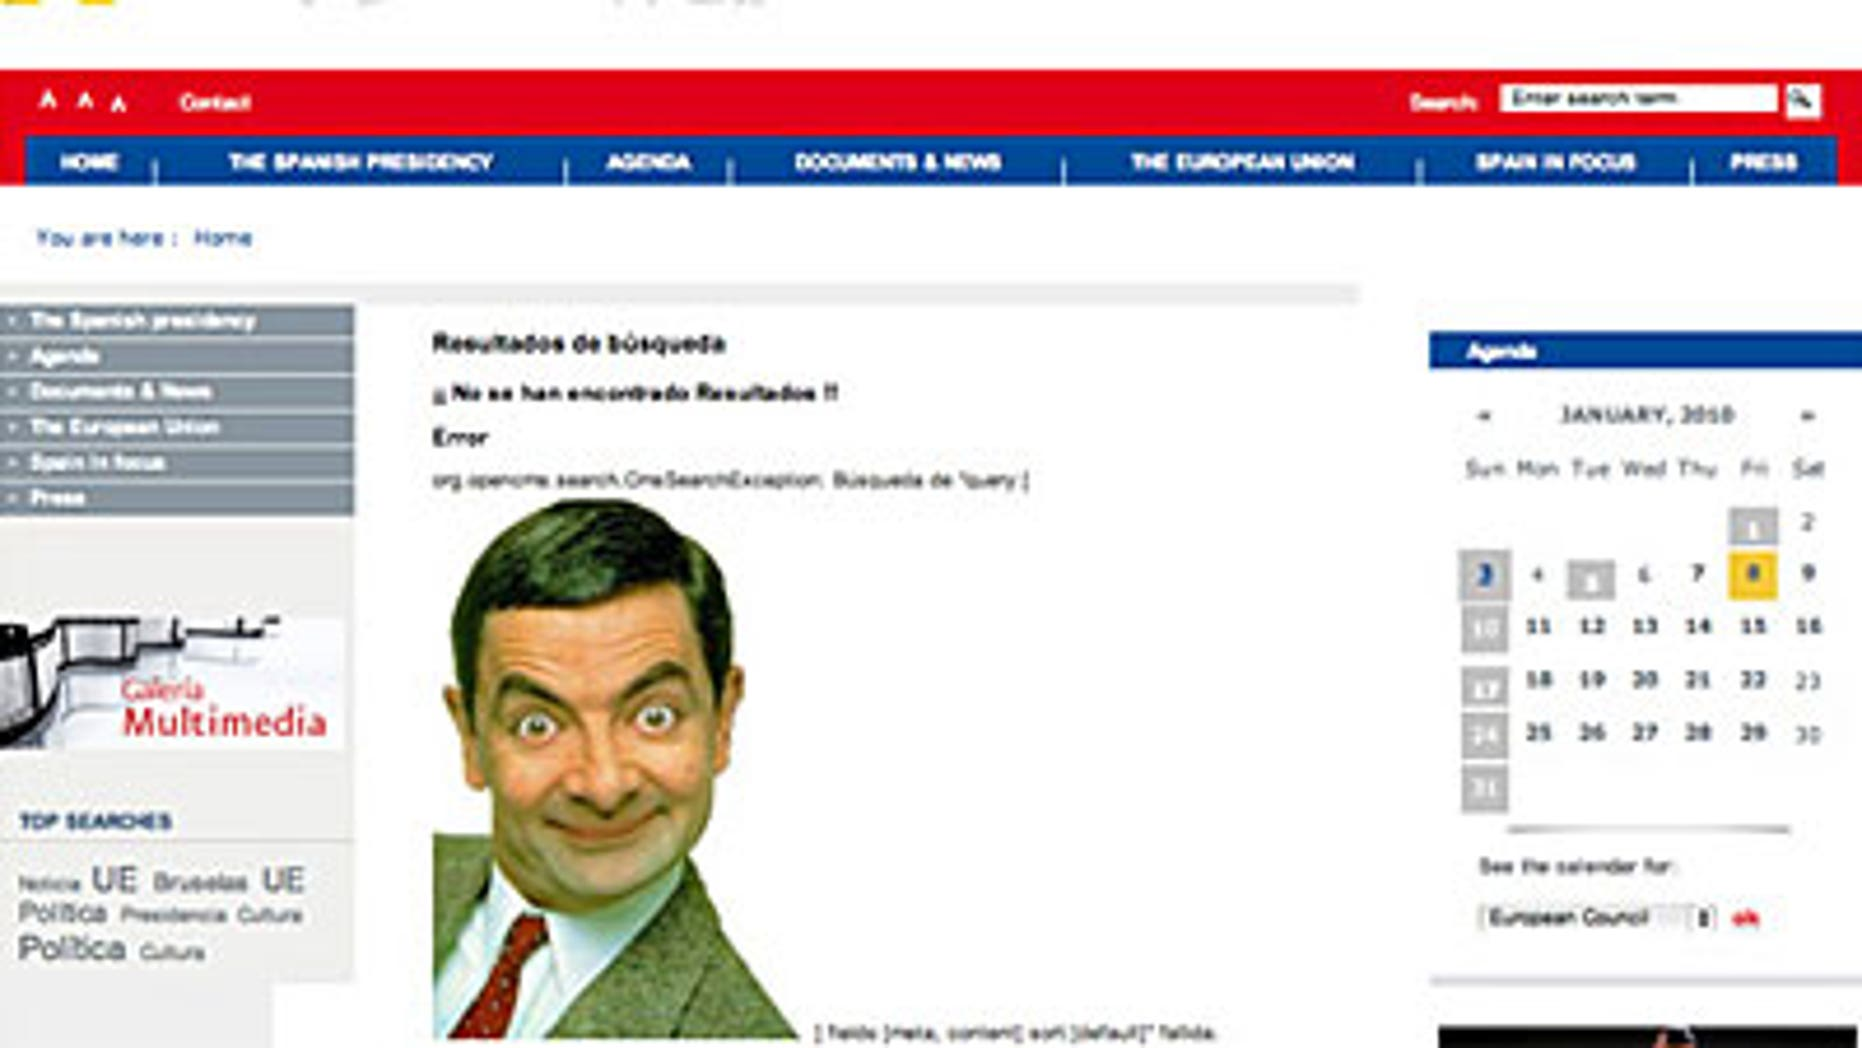 A smiling Mr Bean appeared briefly on Spain's European Union presidency Web site.